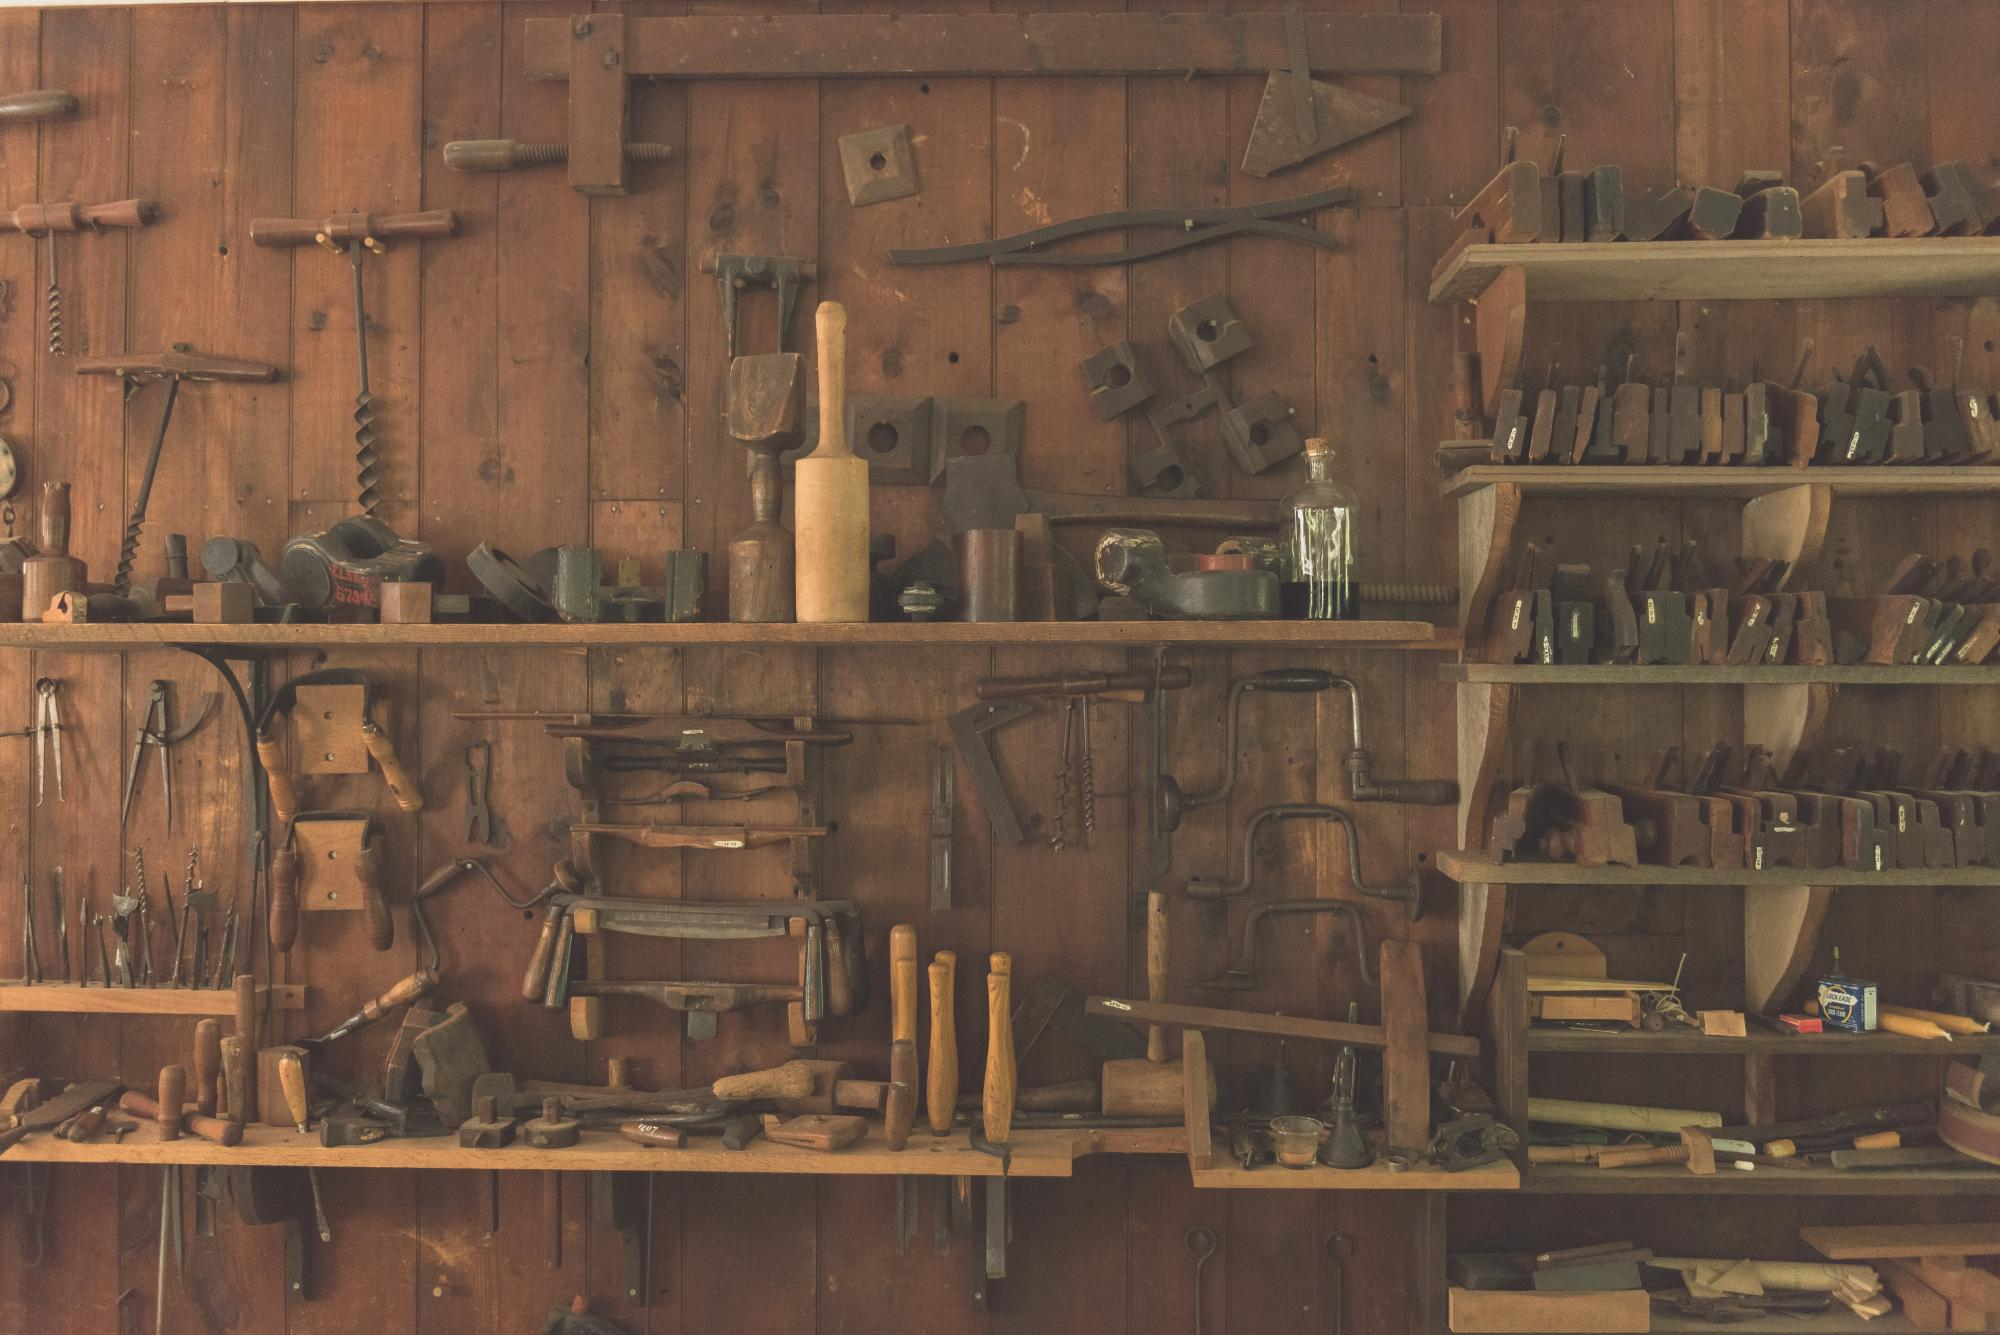 Photo of tools hung on wall